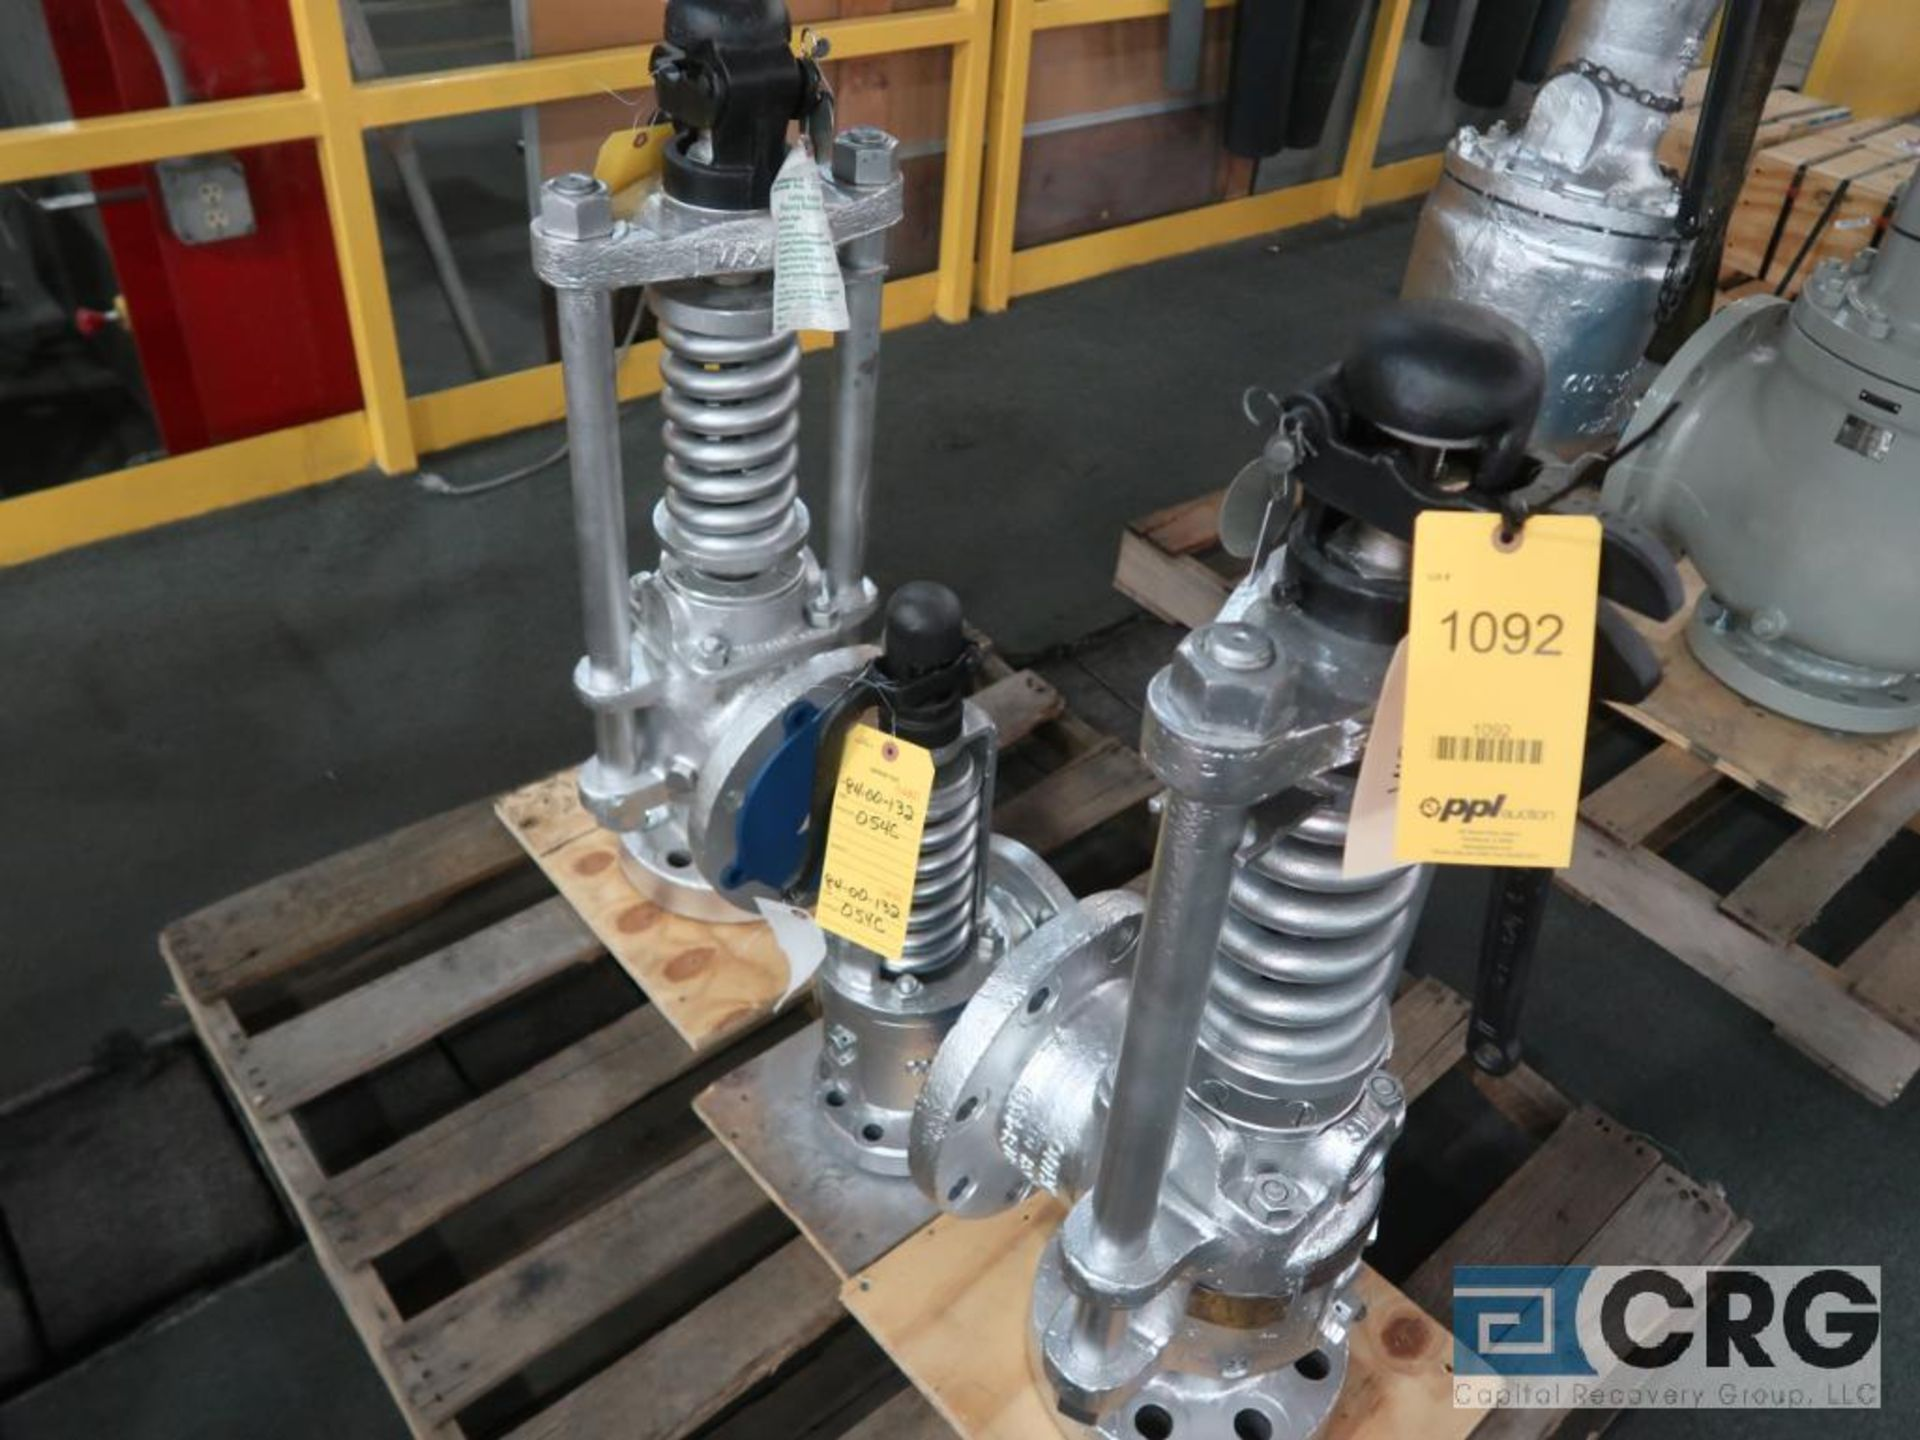 Lot of (3) safety relief valves, (1) 6 in., (1) 3 in., and (1) 2 1/2 in. (Finish Building)